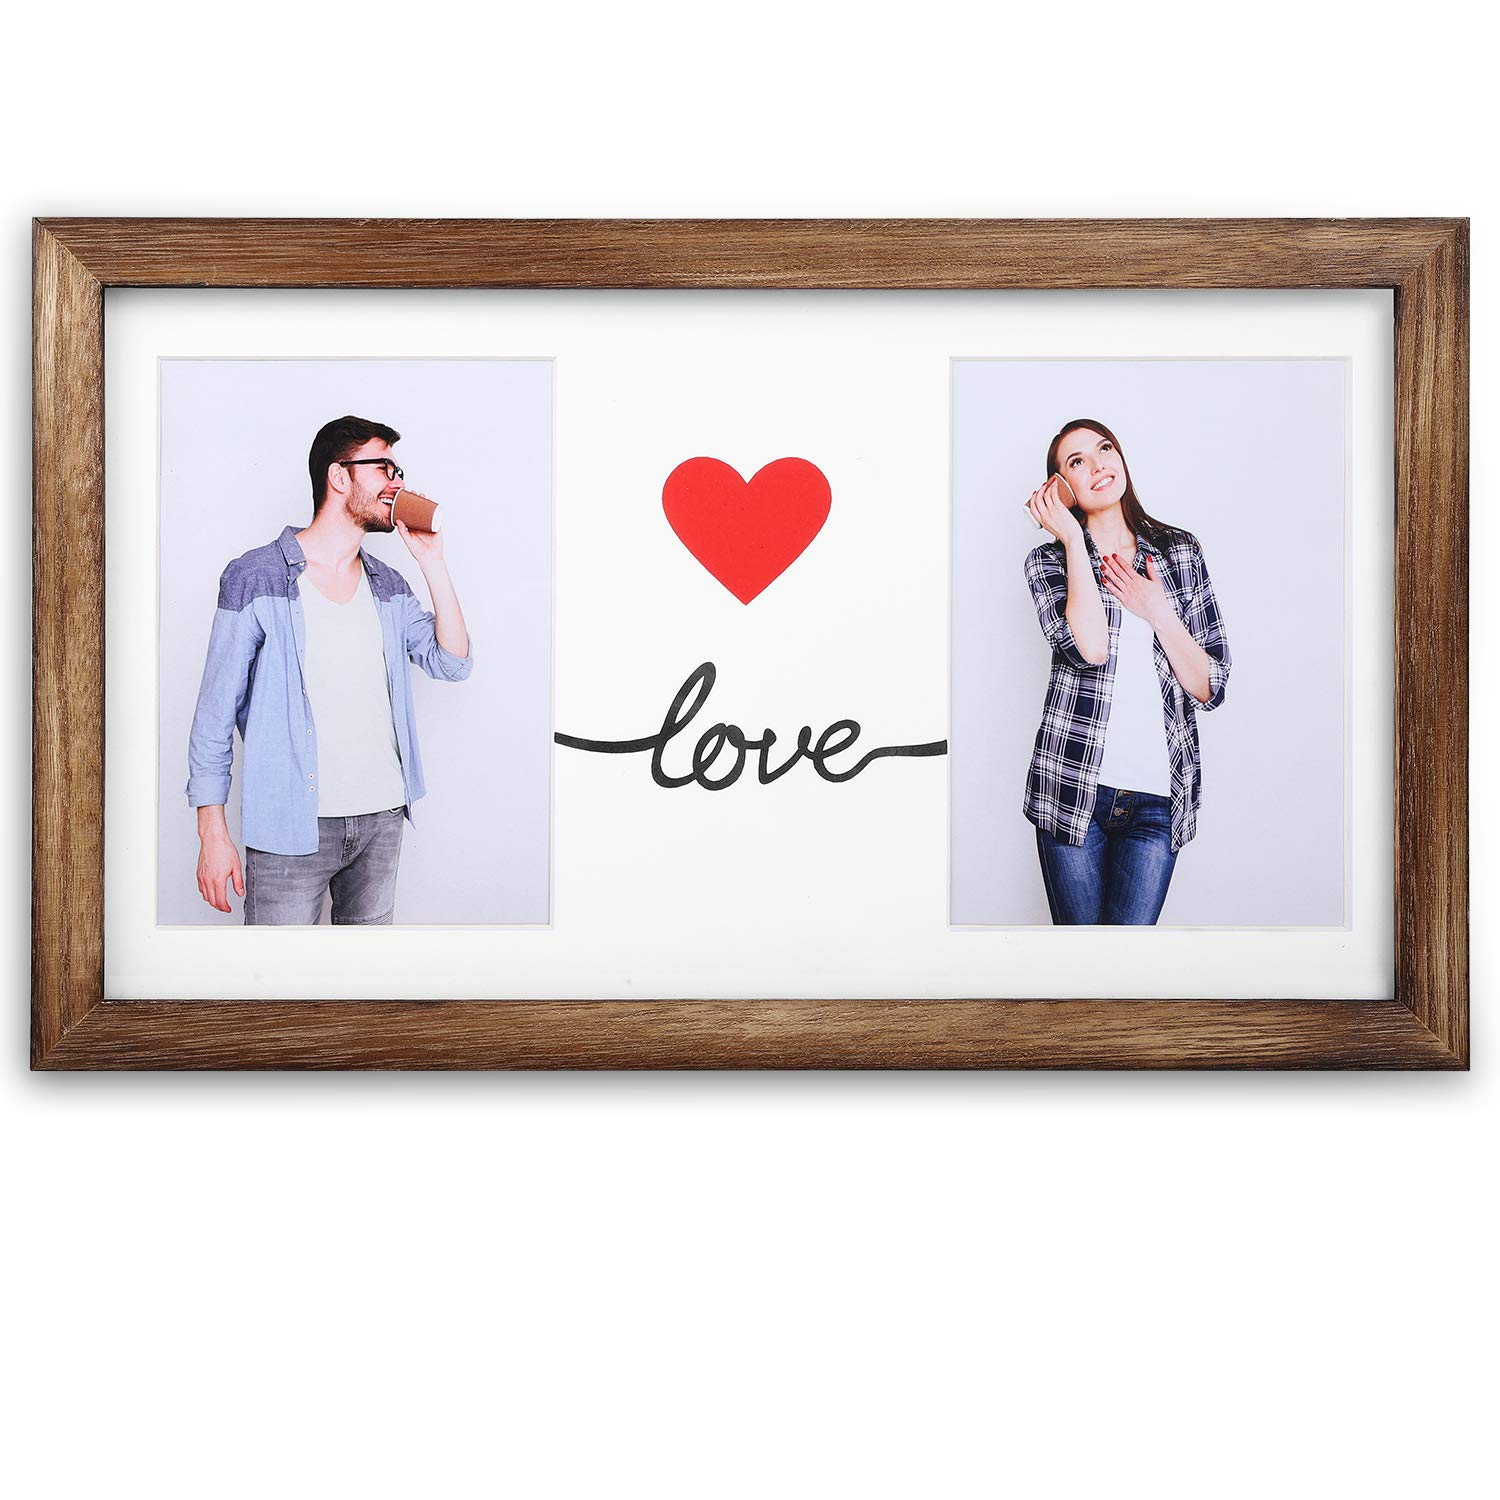 Emfogo 16x9 Picture Frames Display Two 5x7 Photo with Mat Made of Solid Wood & High Definition Glass Wood Picture Frame by Emfogo